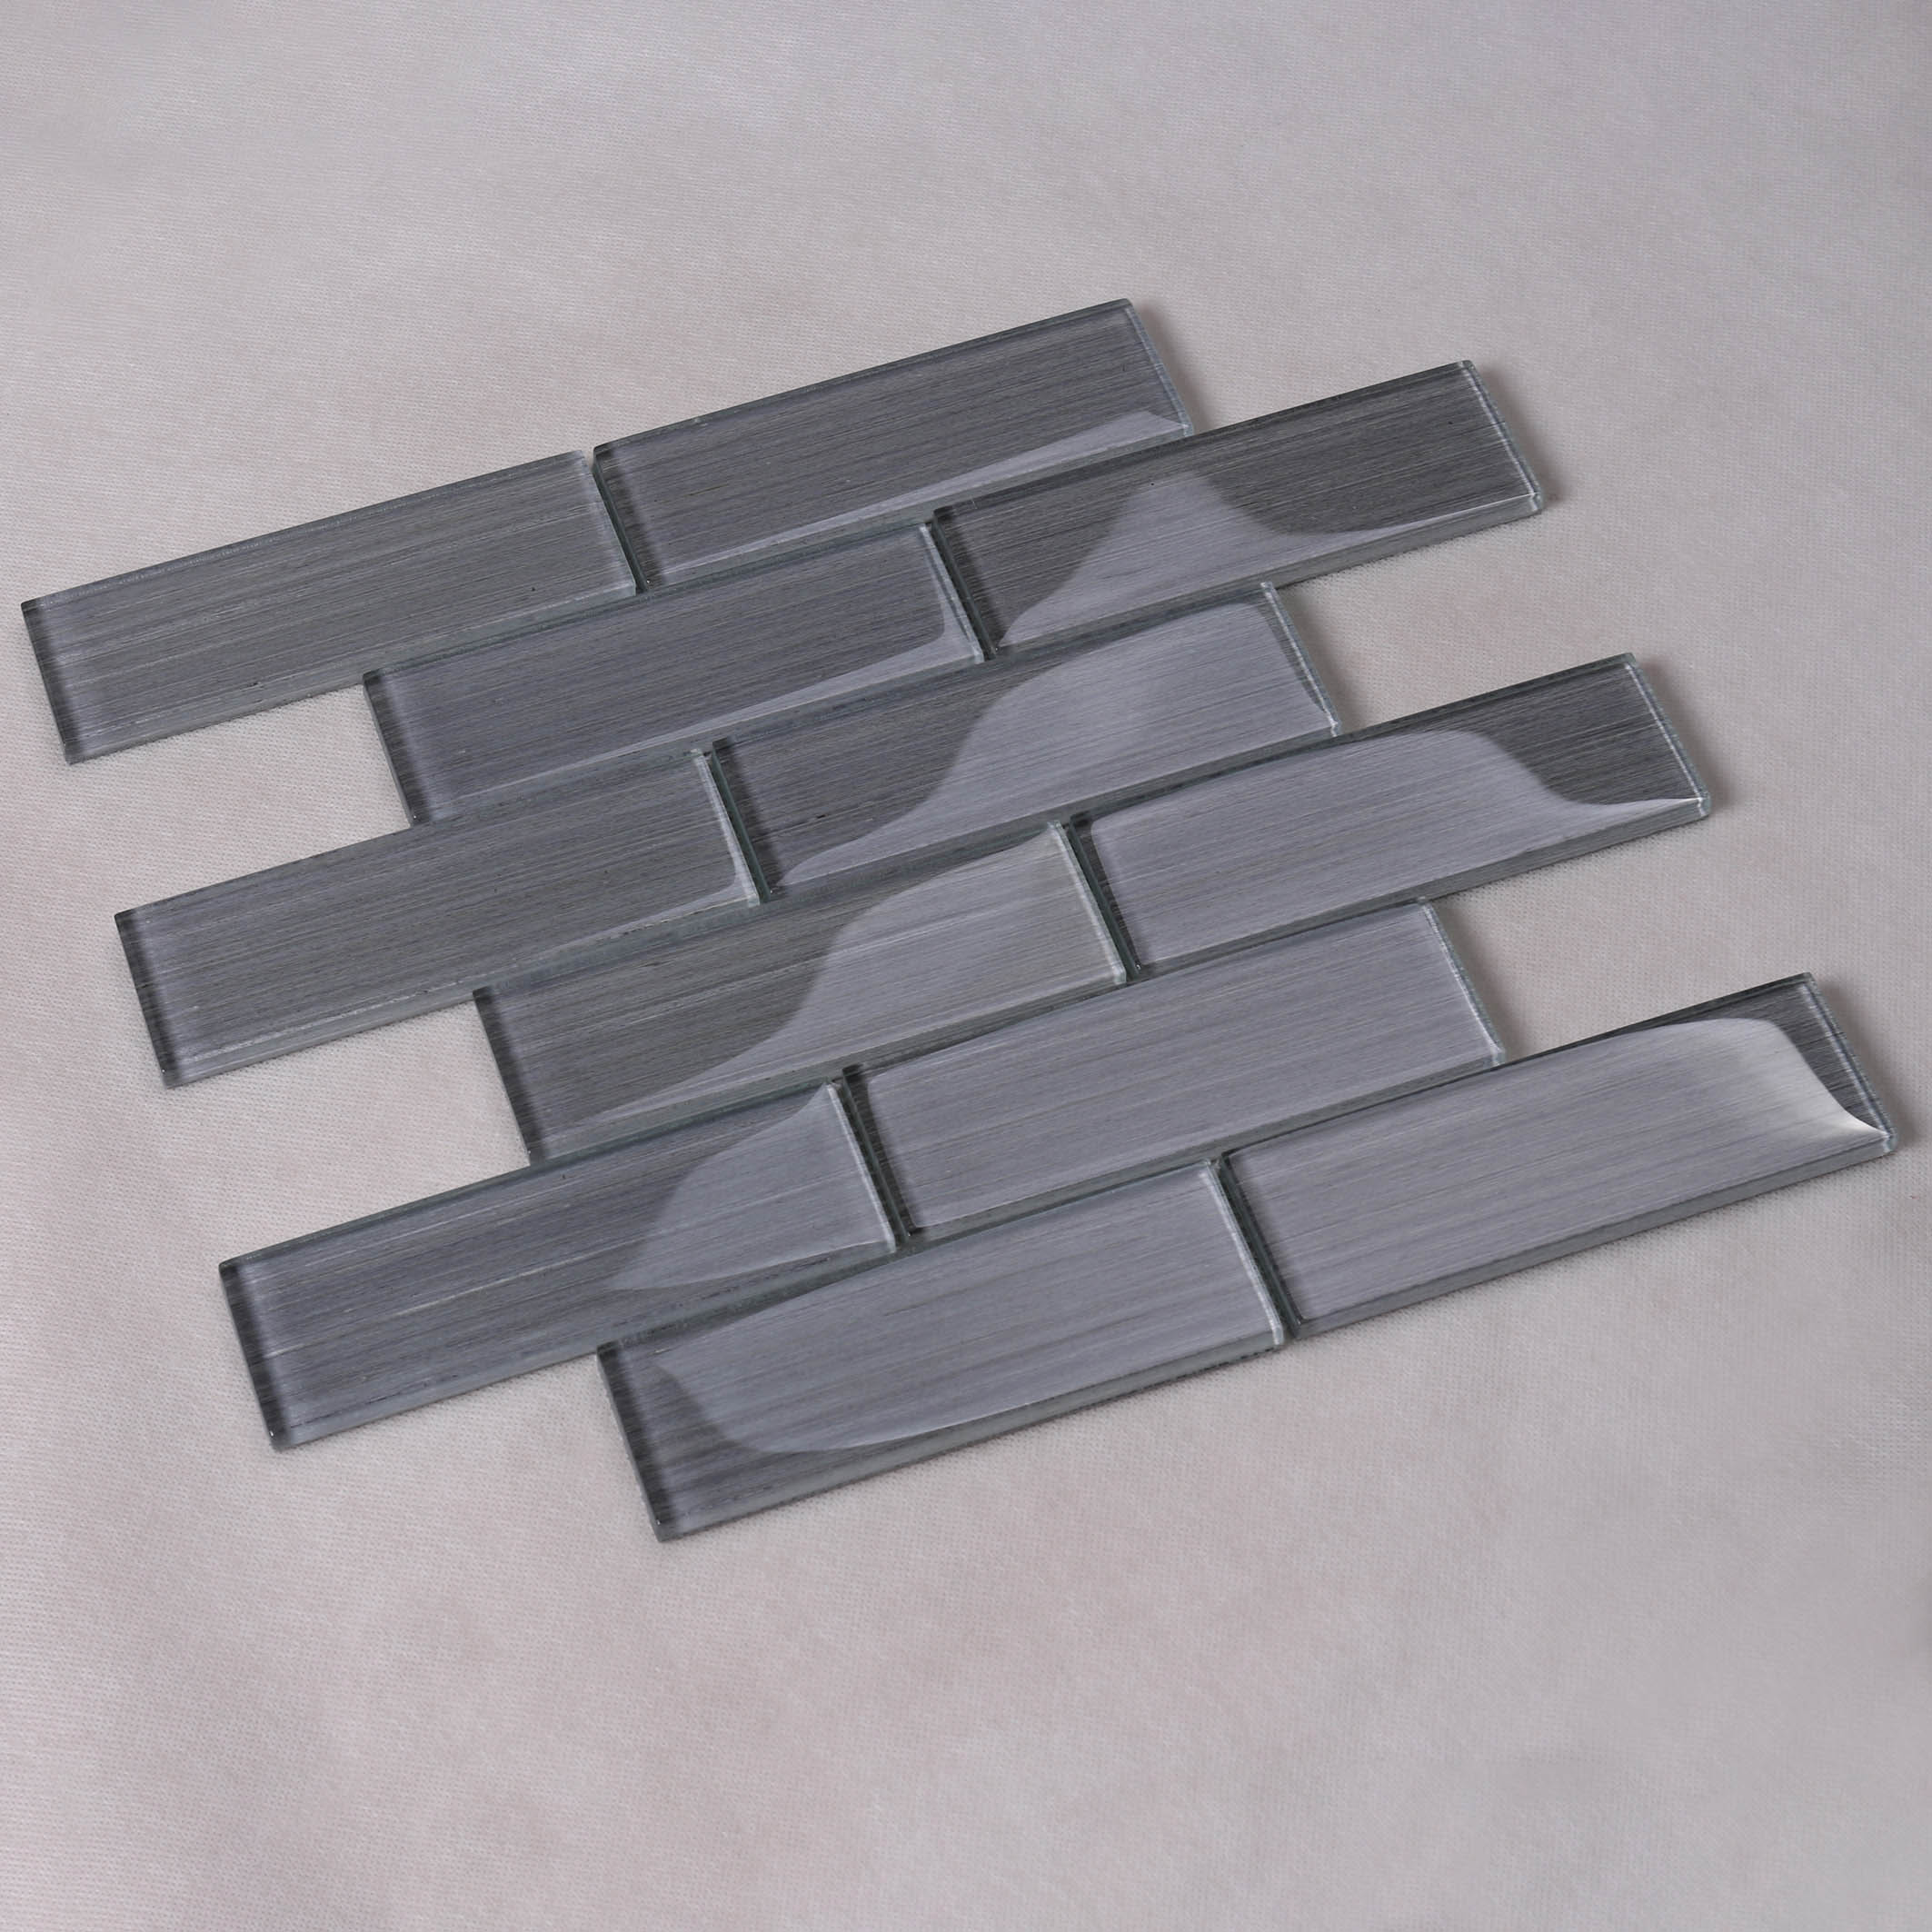 Heng Xing-Glass Wall Tiles, White Glass Backsplash Manufacturer | Glass Mosaic Tile-1